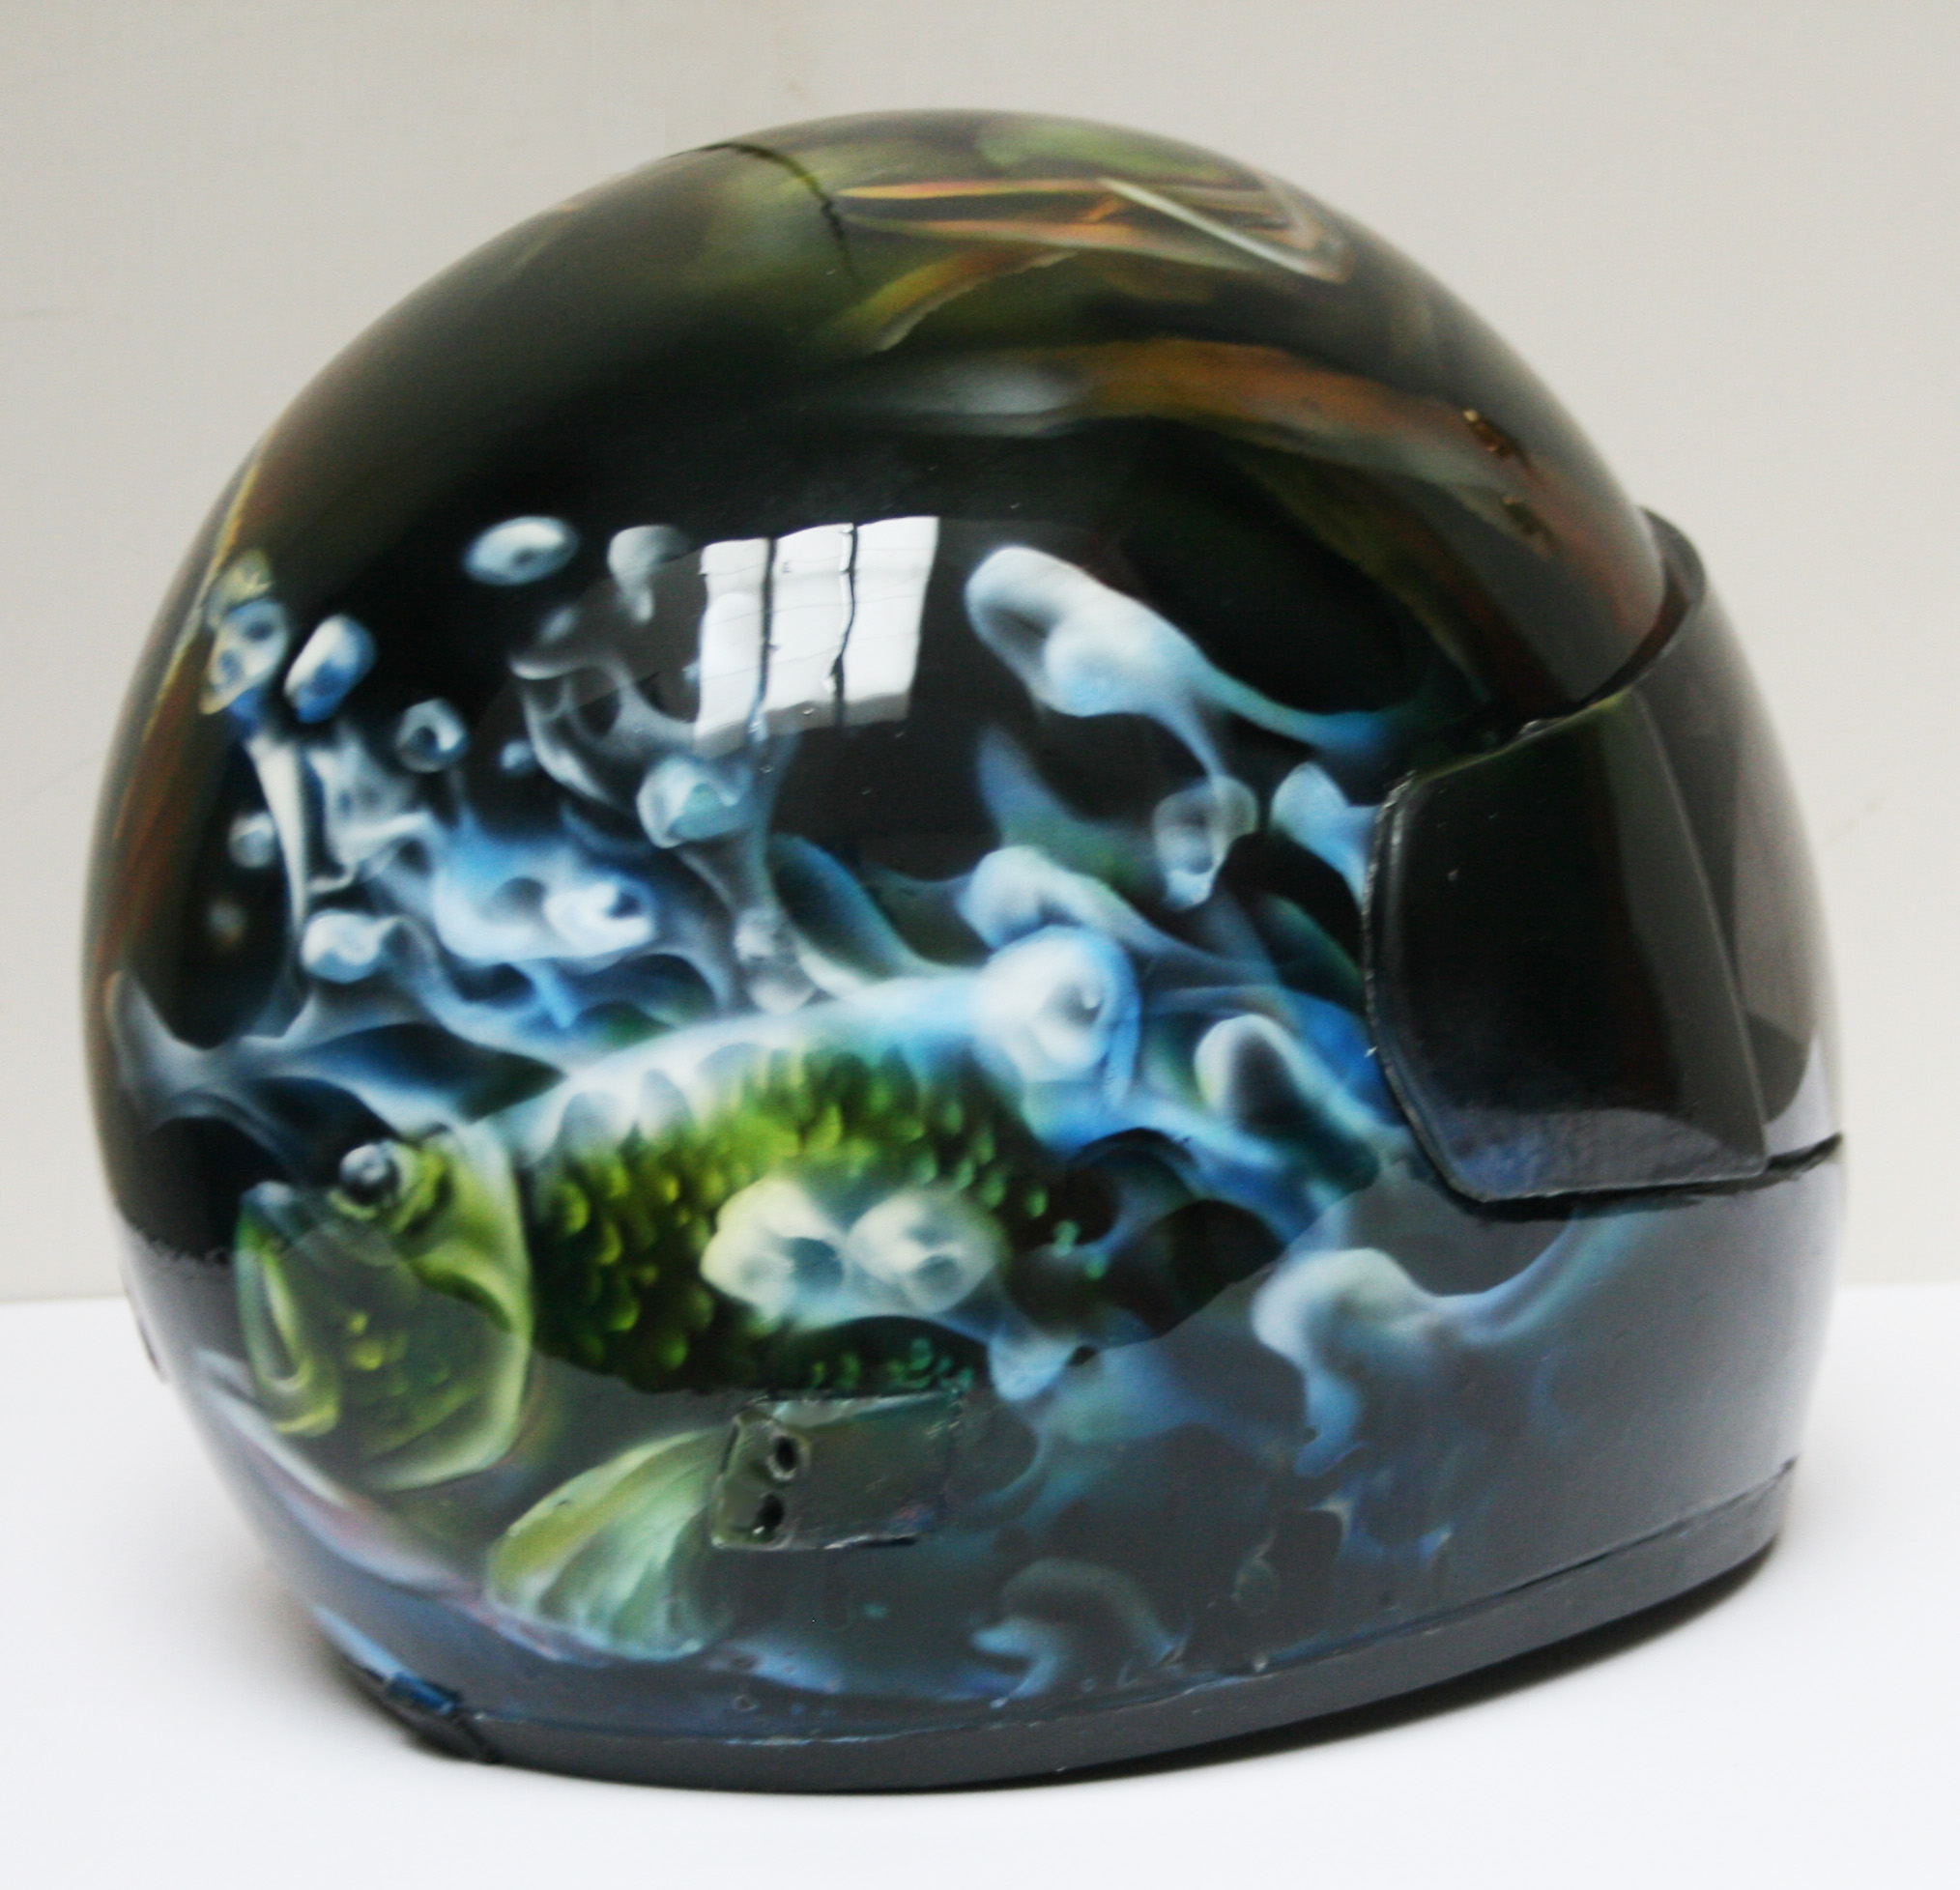 Custom Airbrushed Motorcycle Helmets